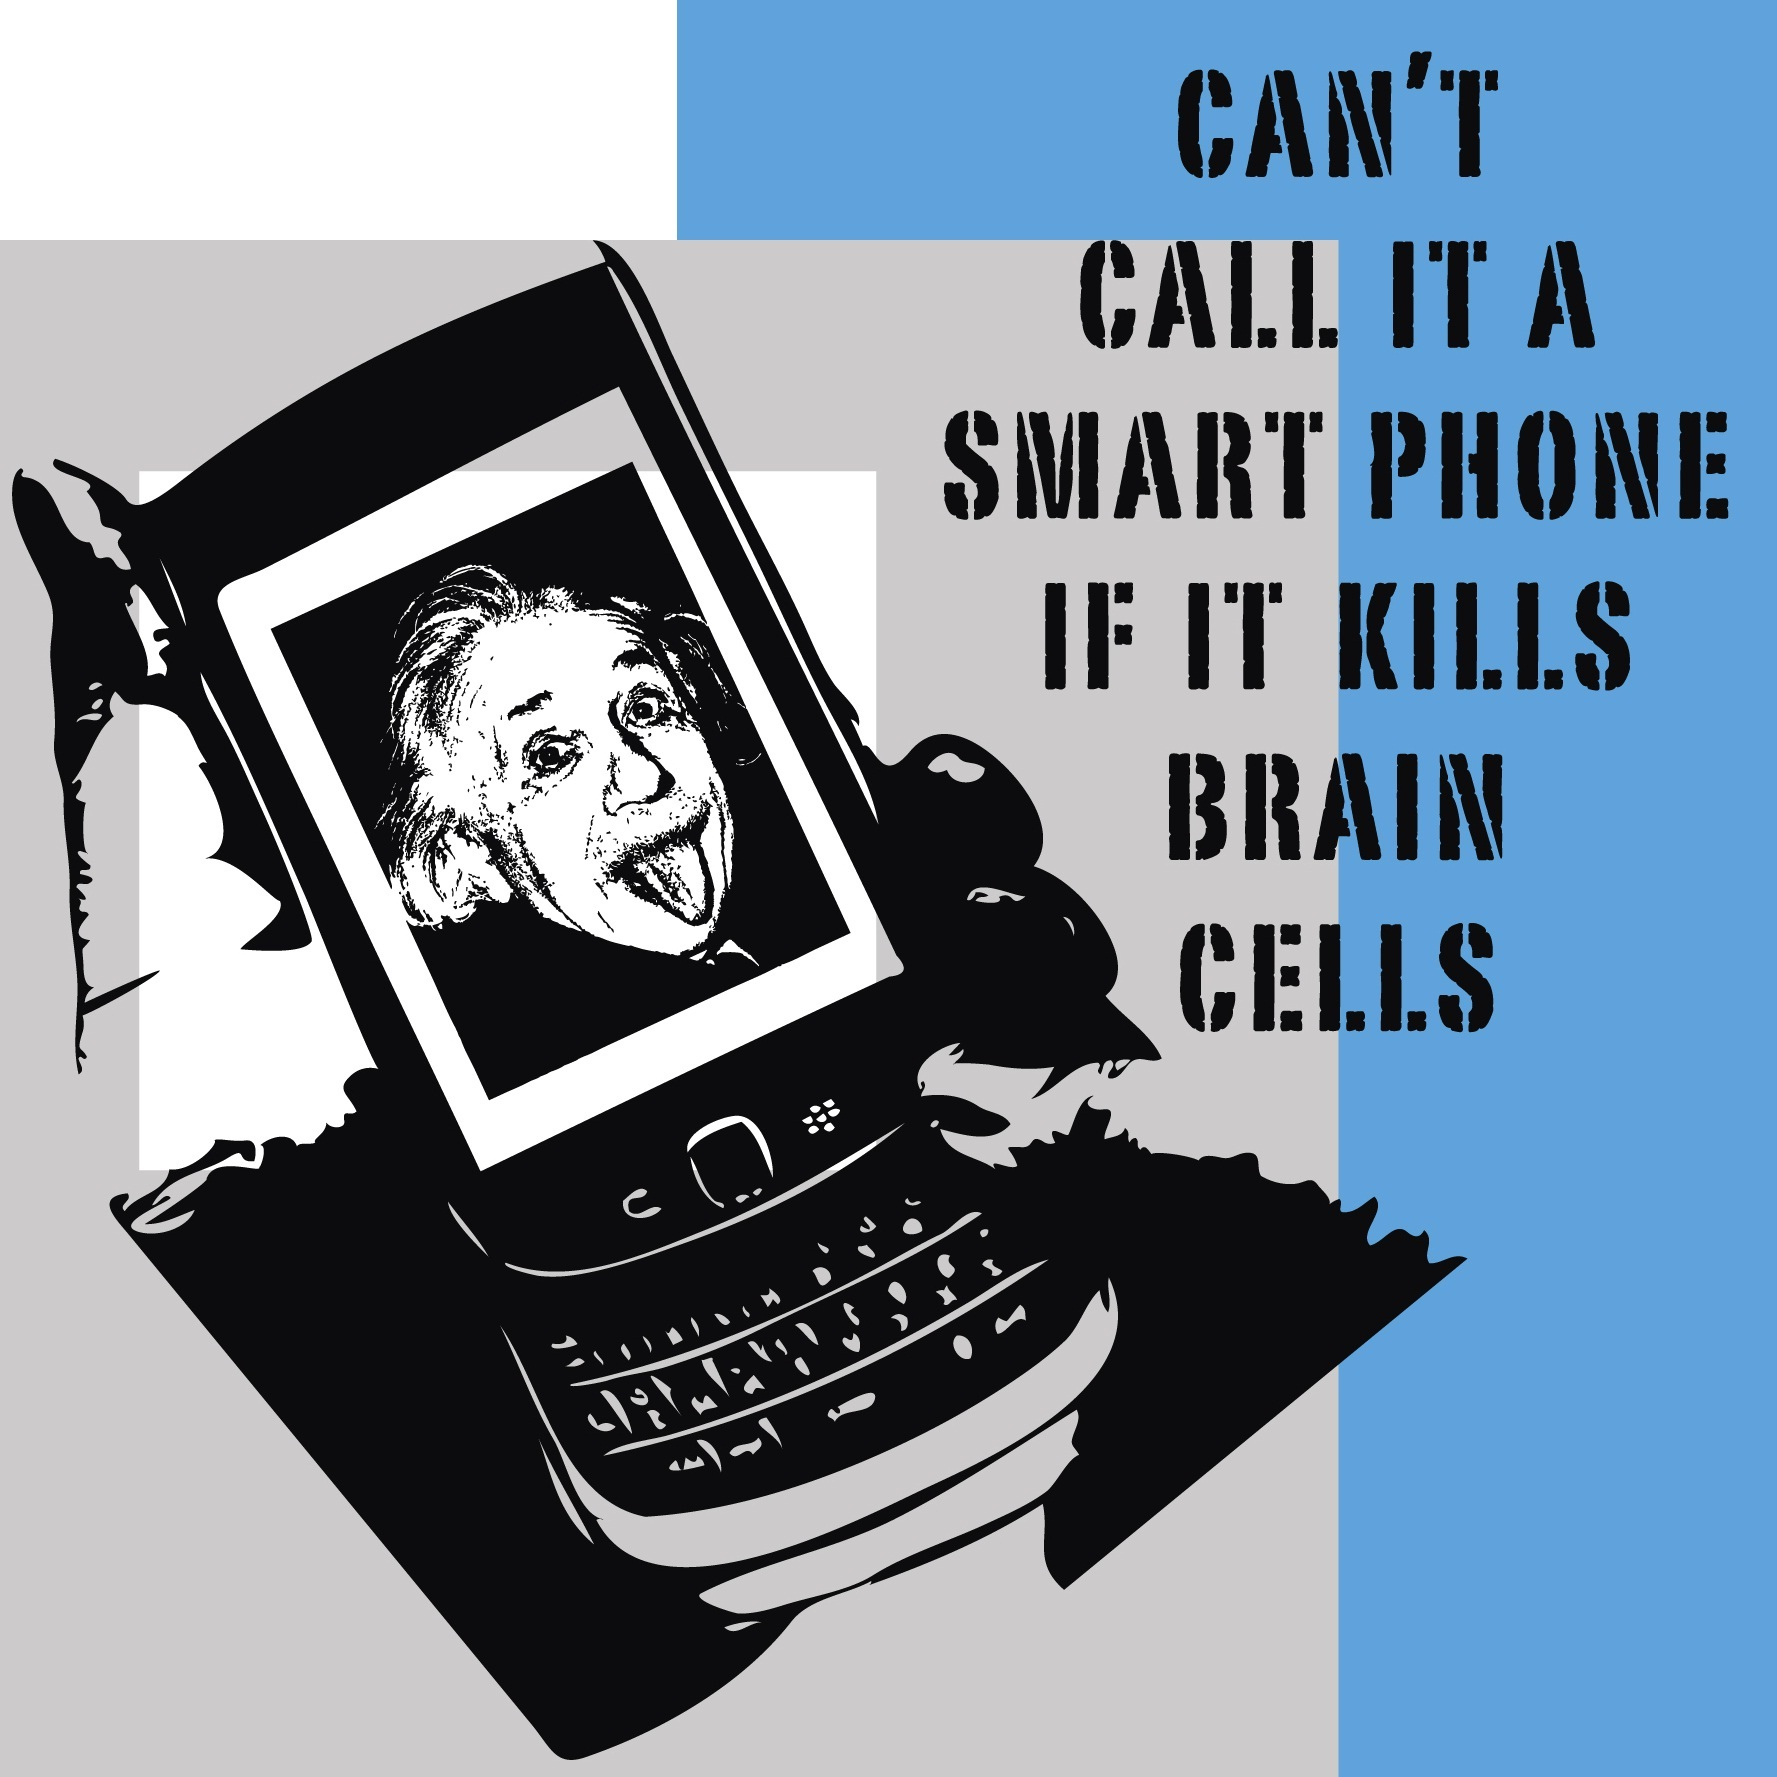 Cant_call_it_a_smartphone_if_it_kills_brain_cells